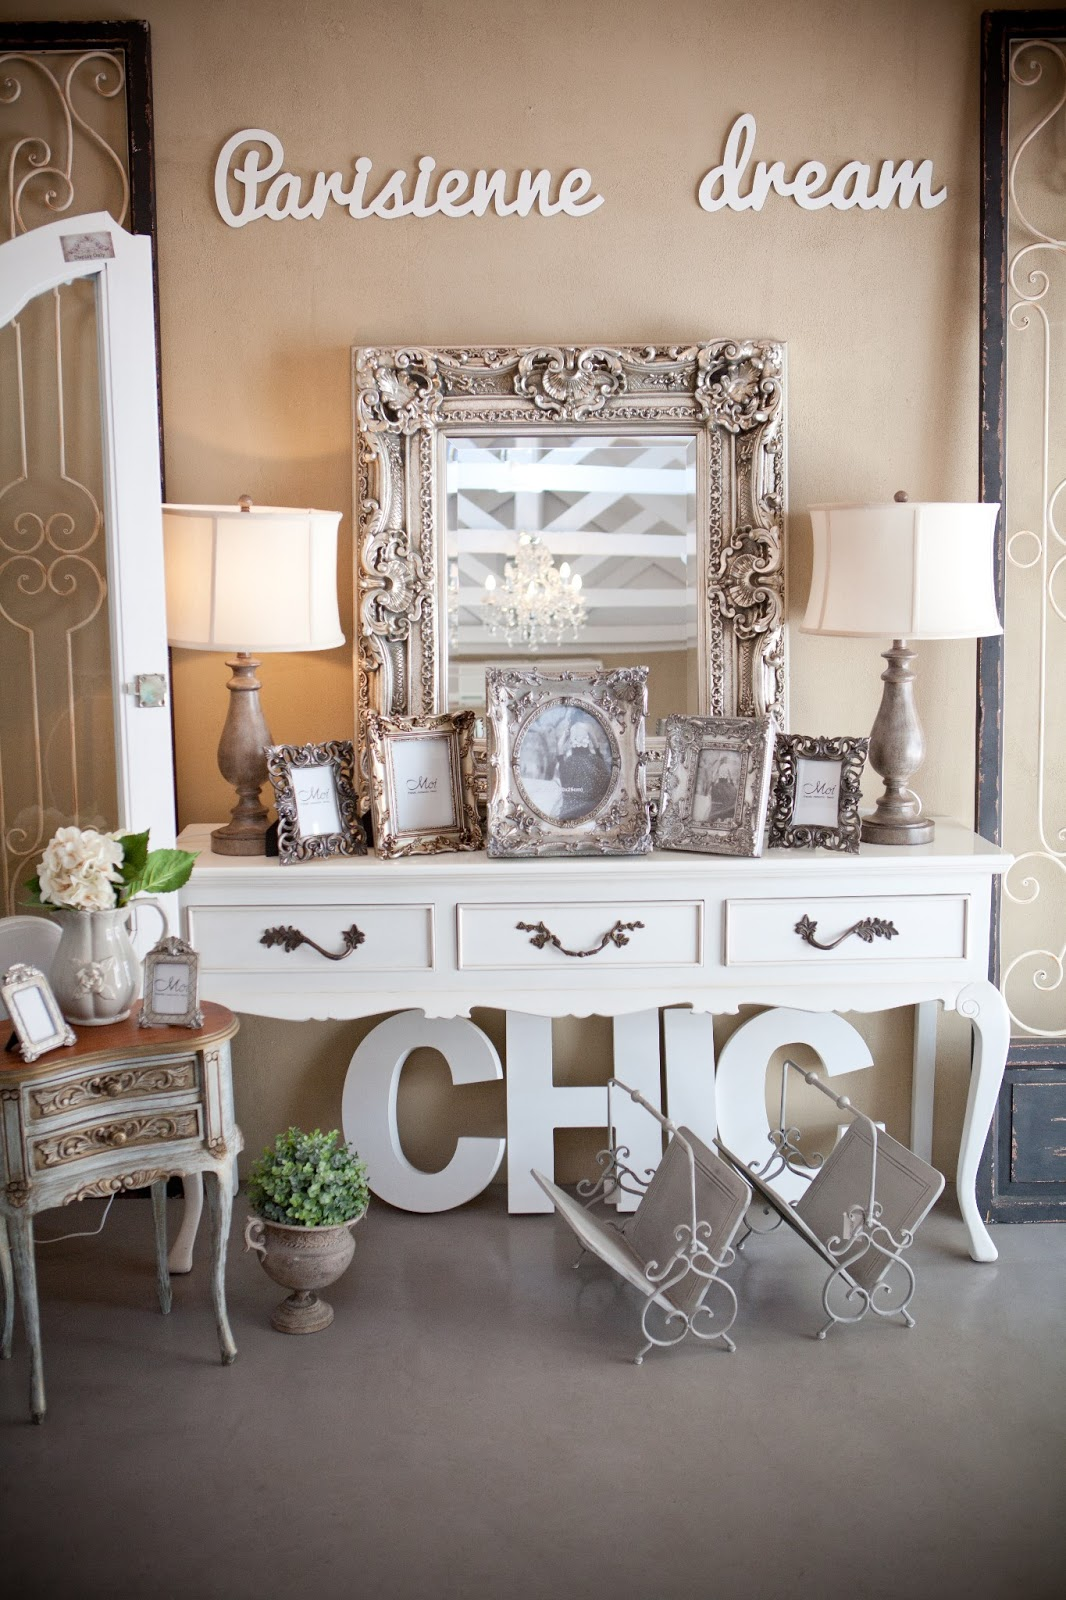 Moi Decor Tips On How To Achieve The French Look In Your Home